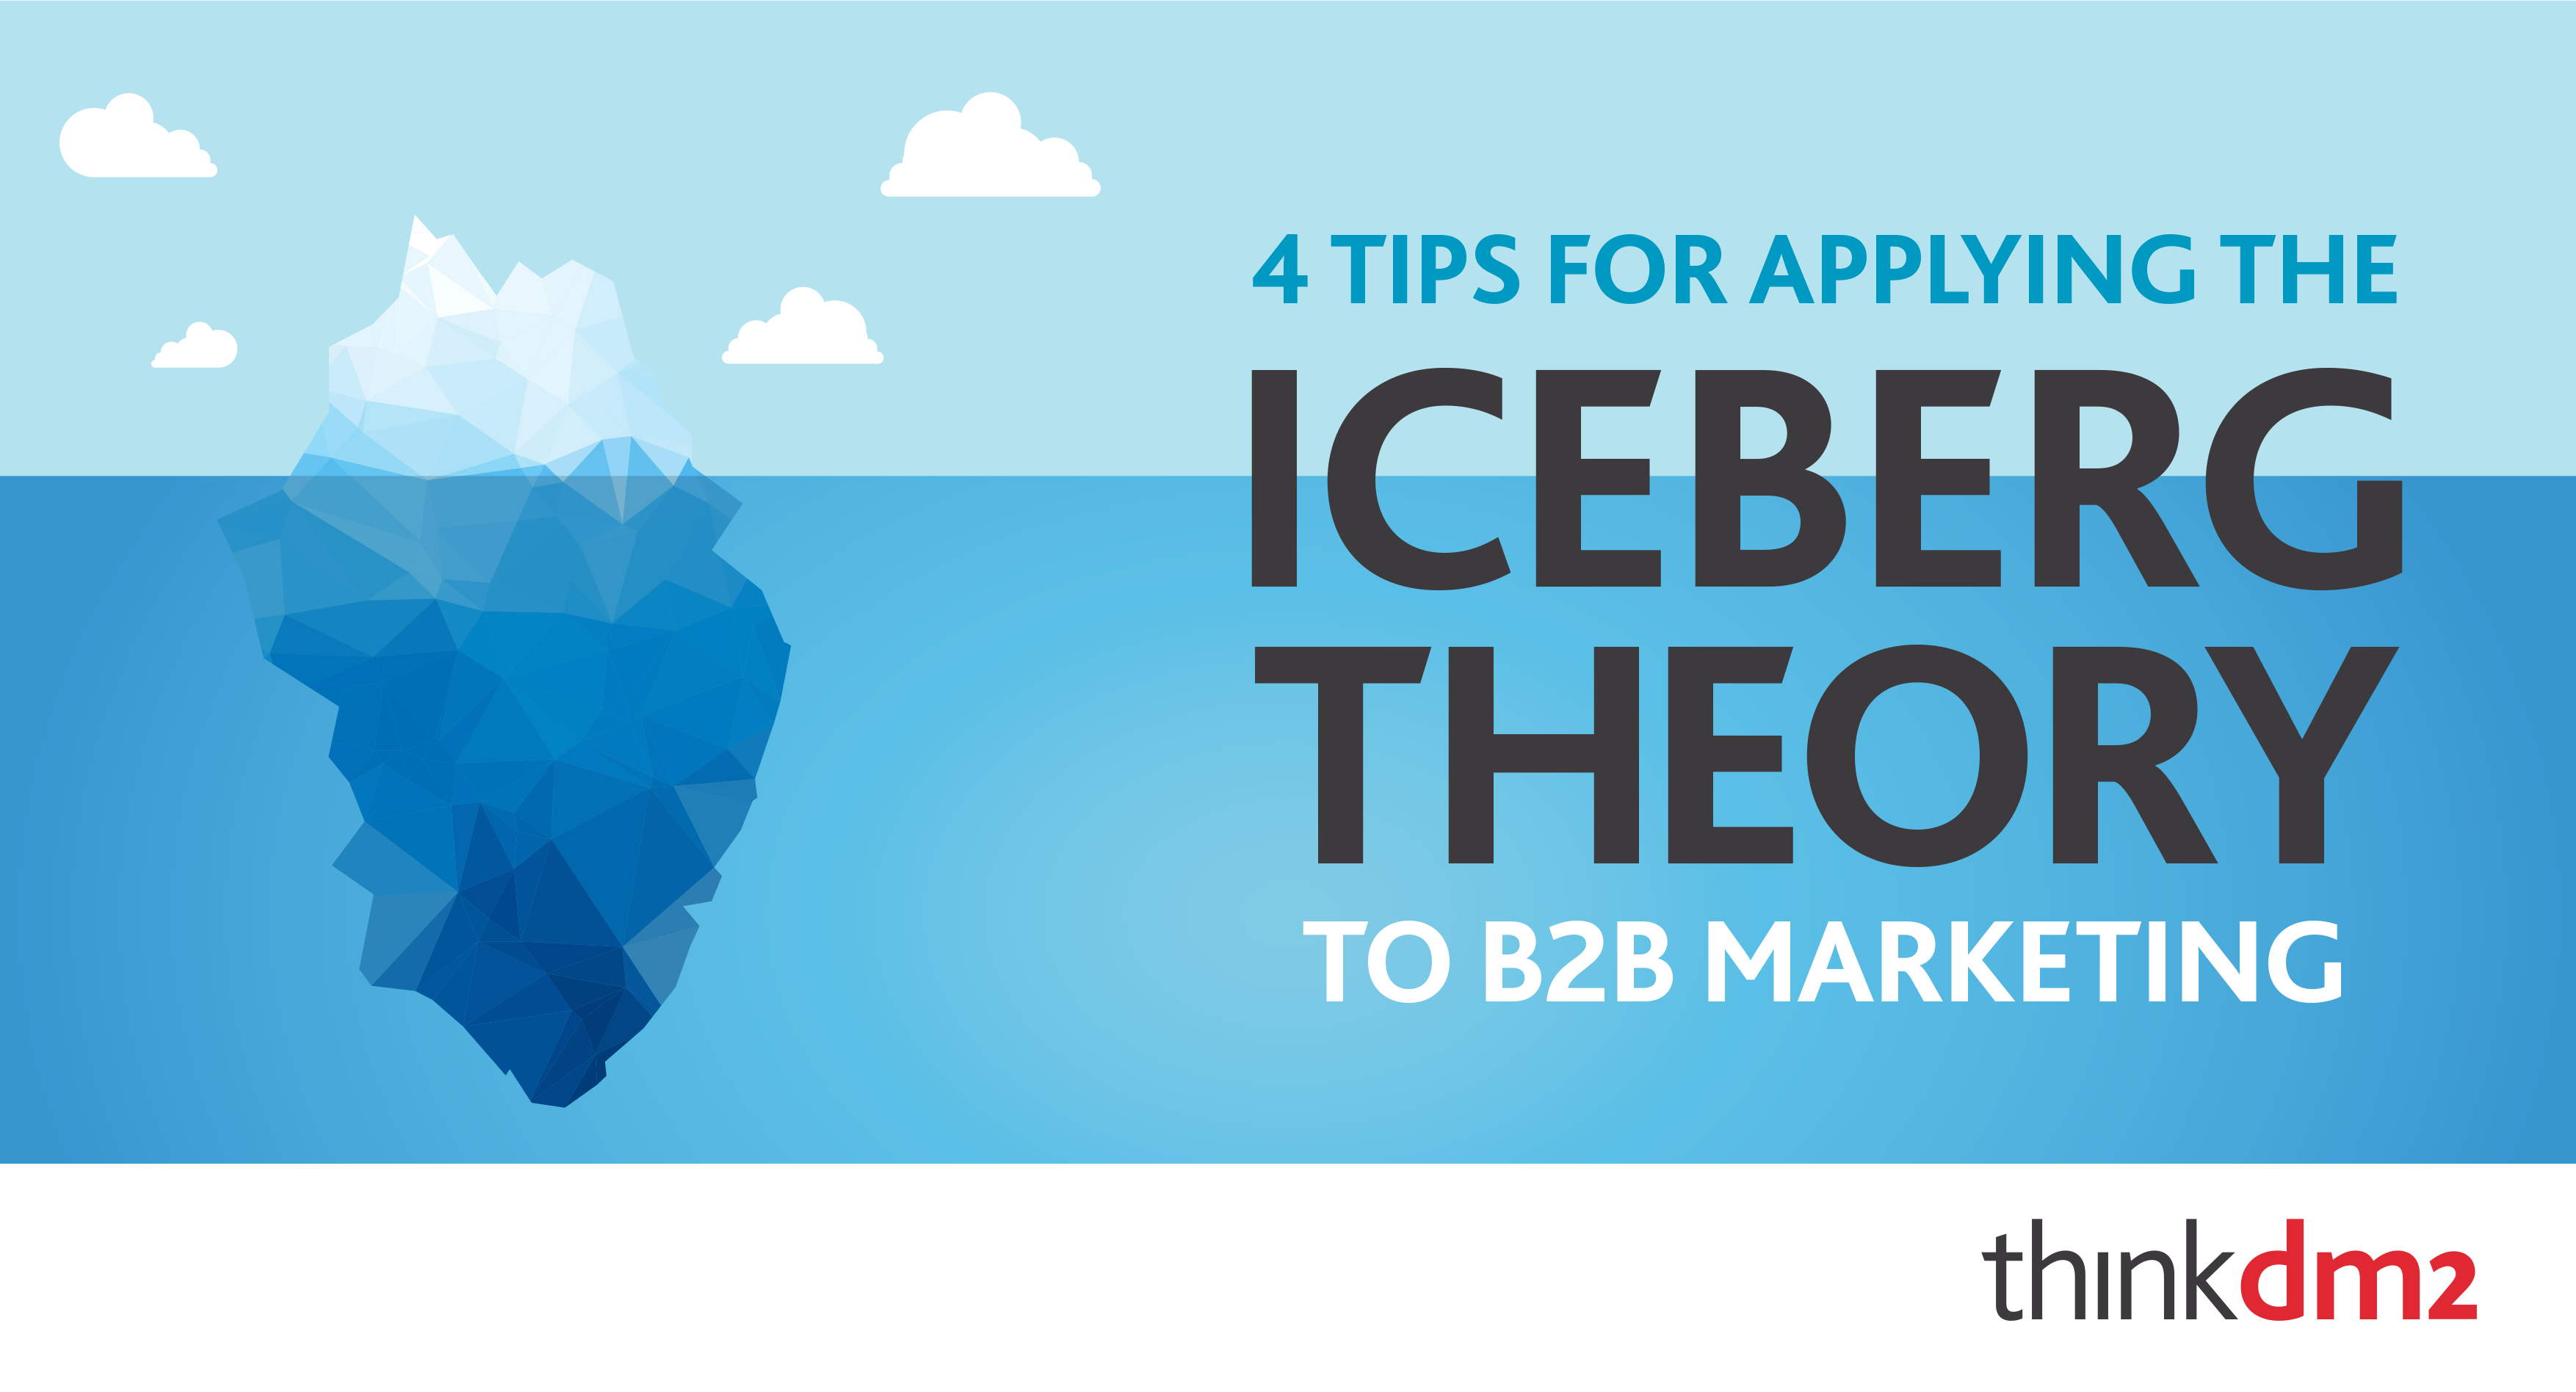 thinkdm2-4-tips-for-applying-the-iceberg-theory.png